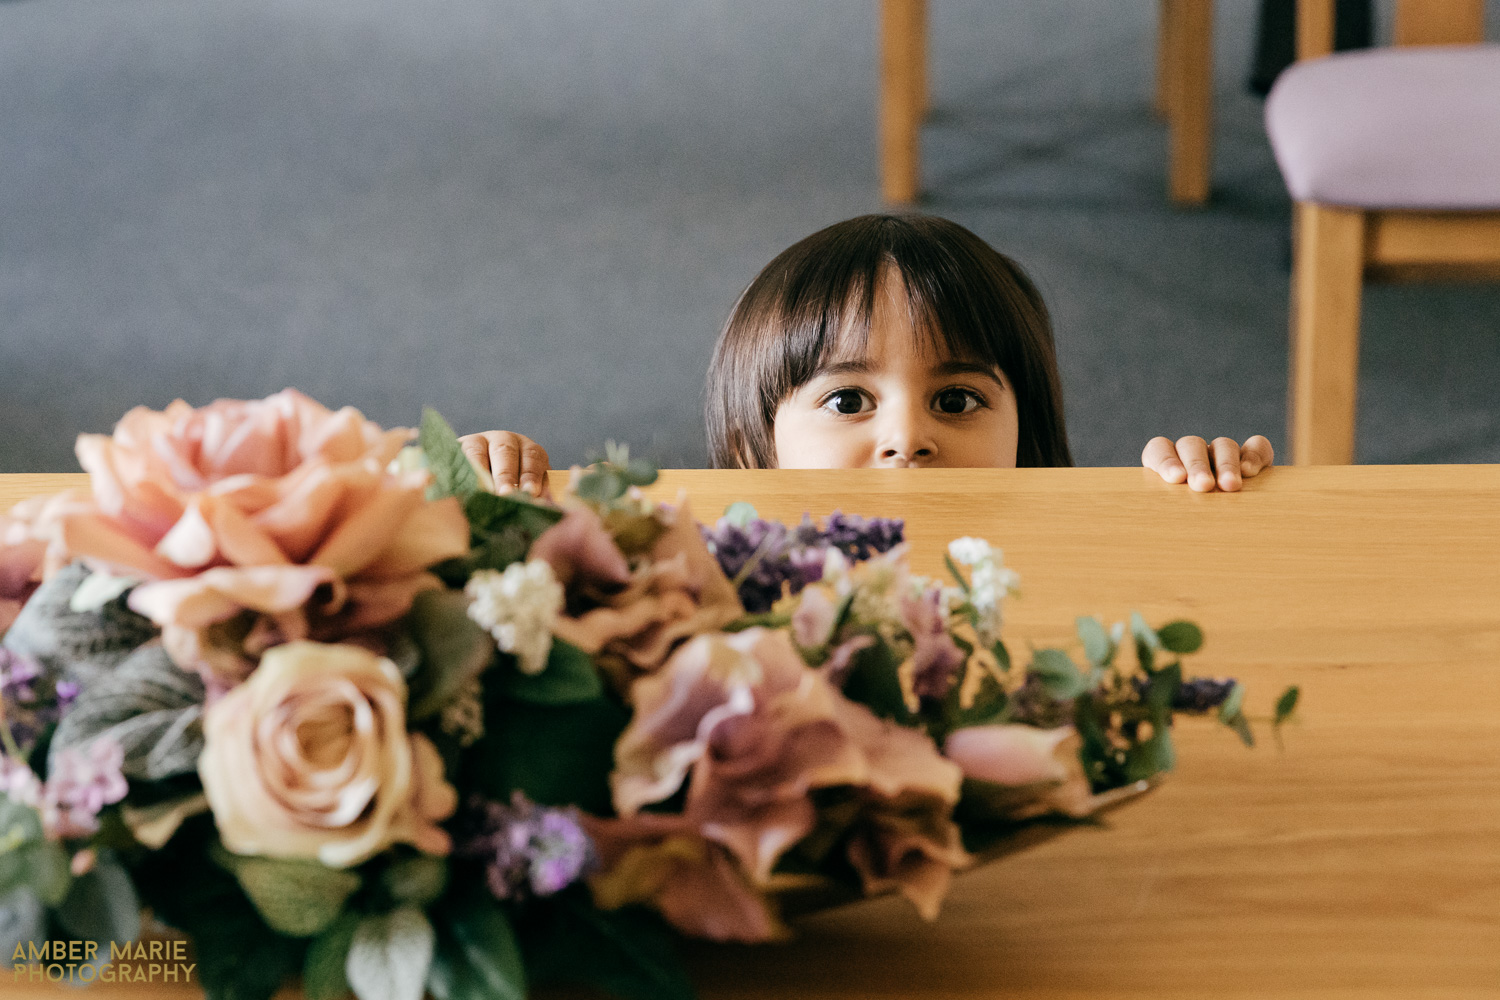 Candid photo of flower girl peeping over table